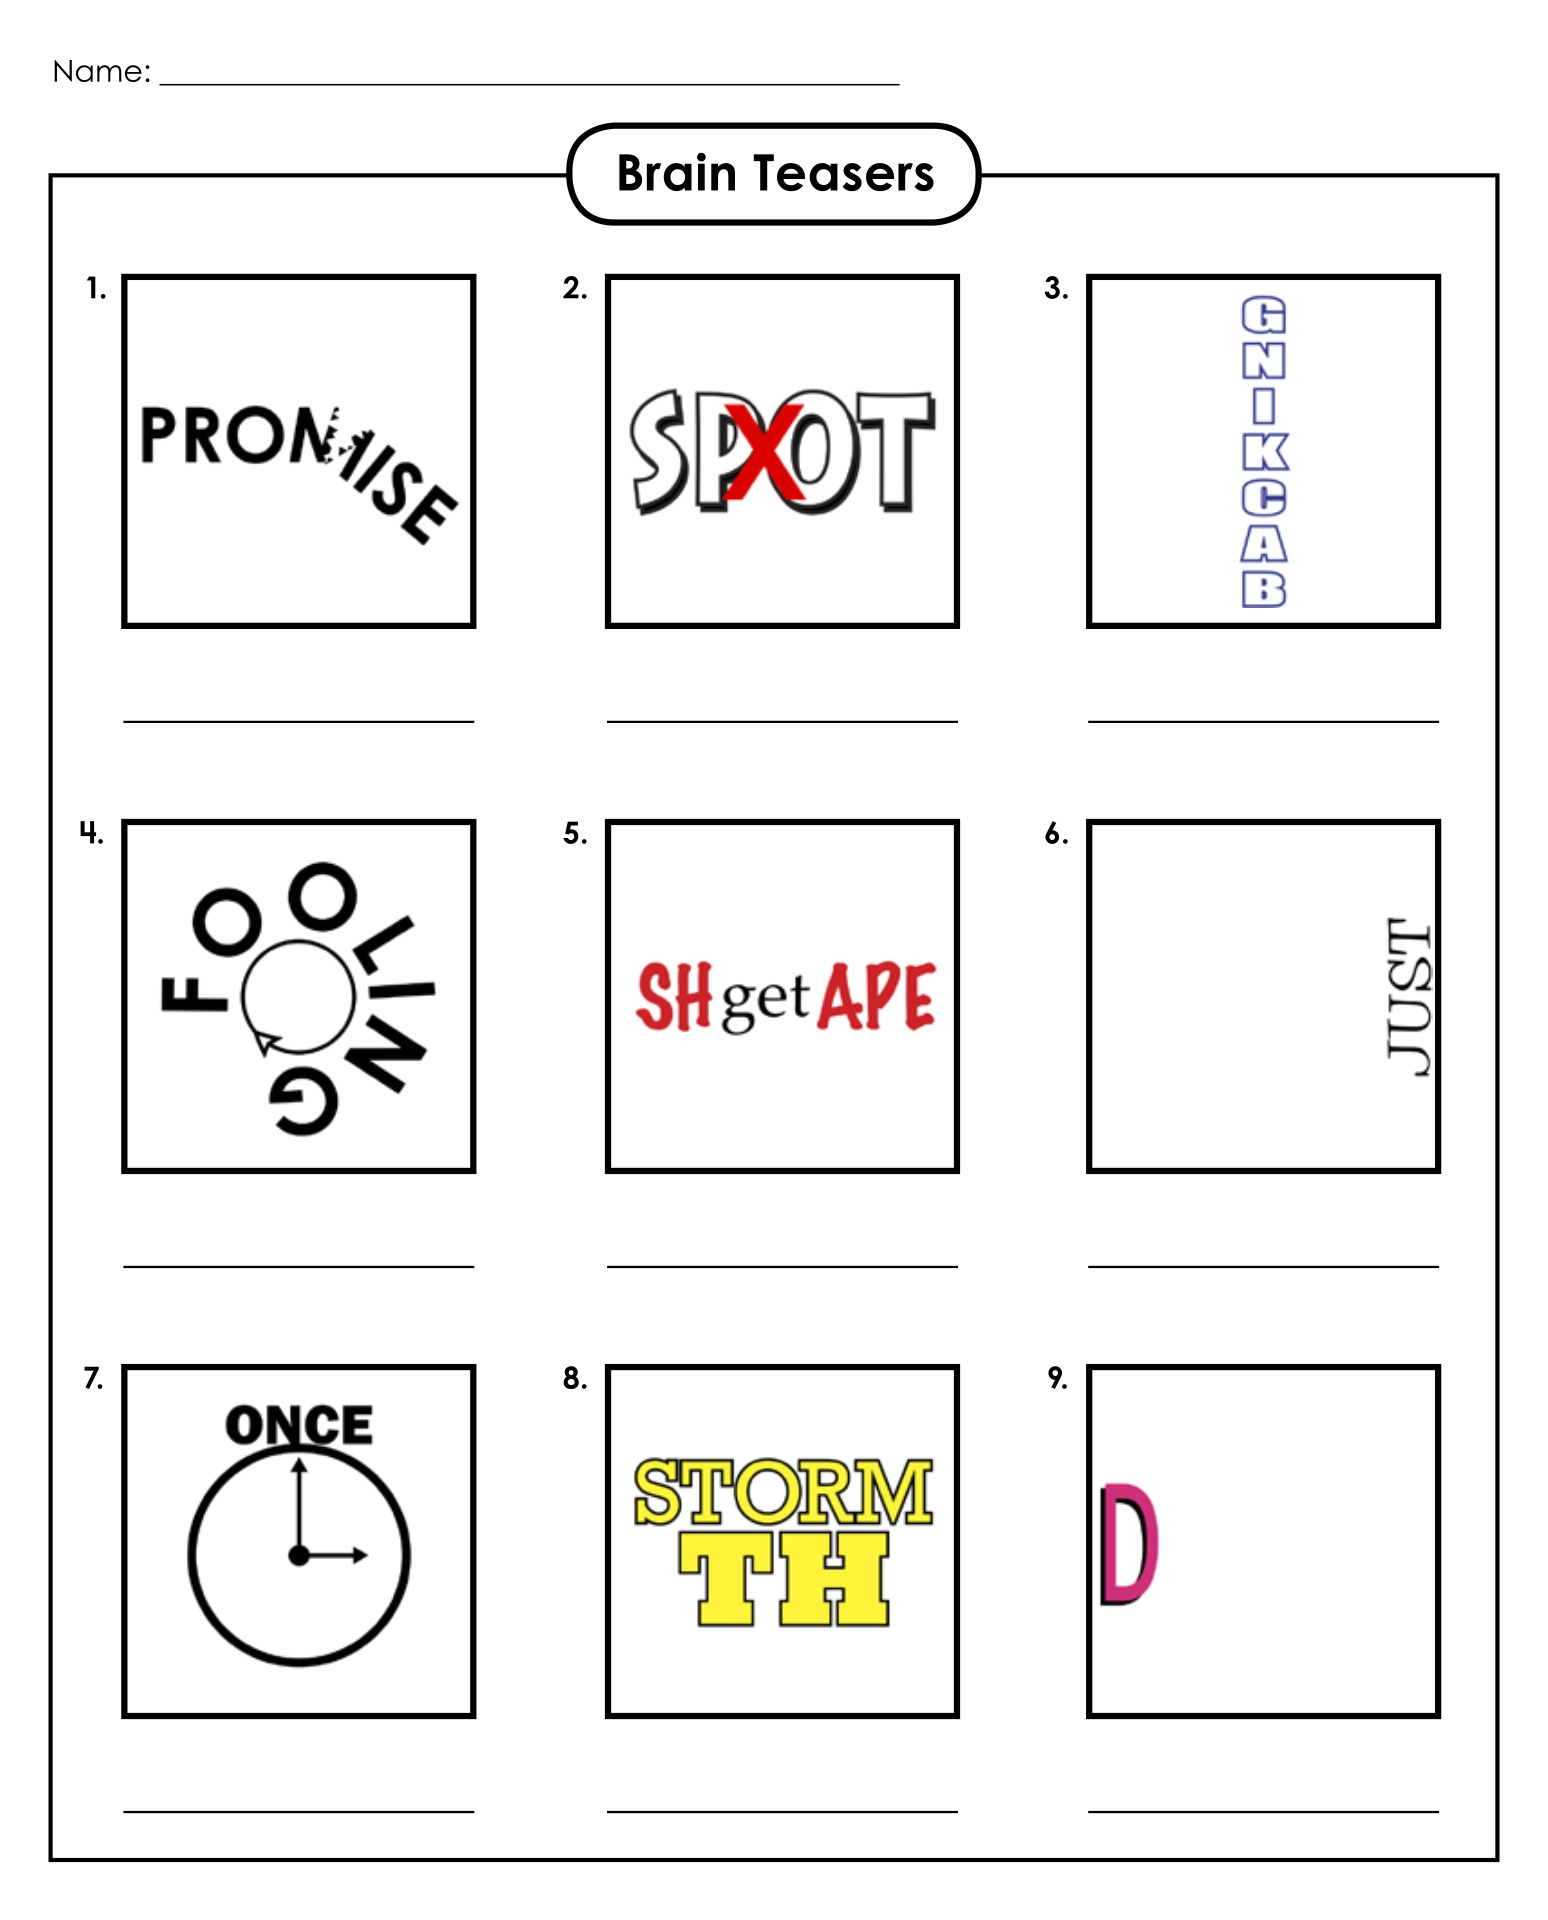 Rebus Puzzle Brain Teasers Worksheets